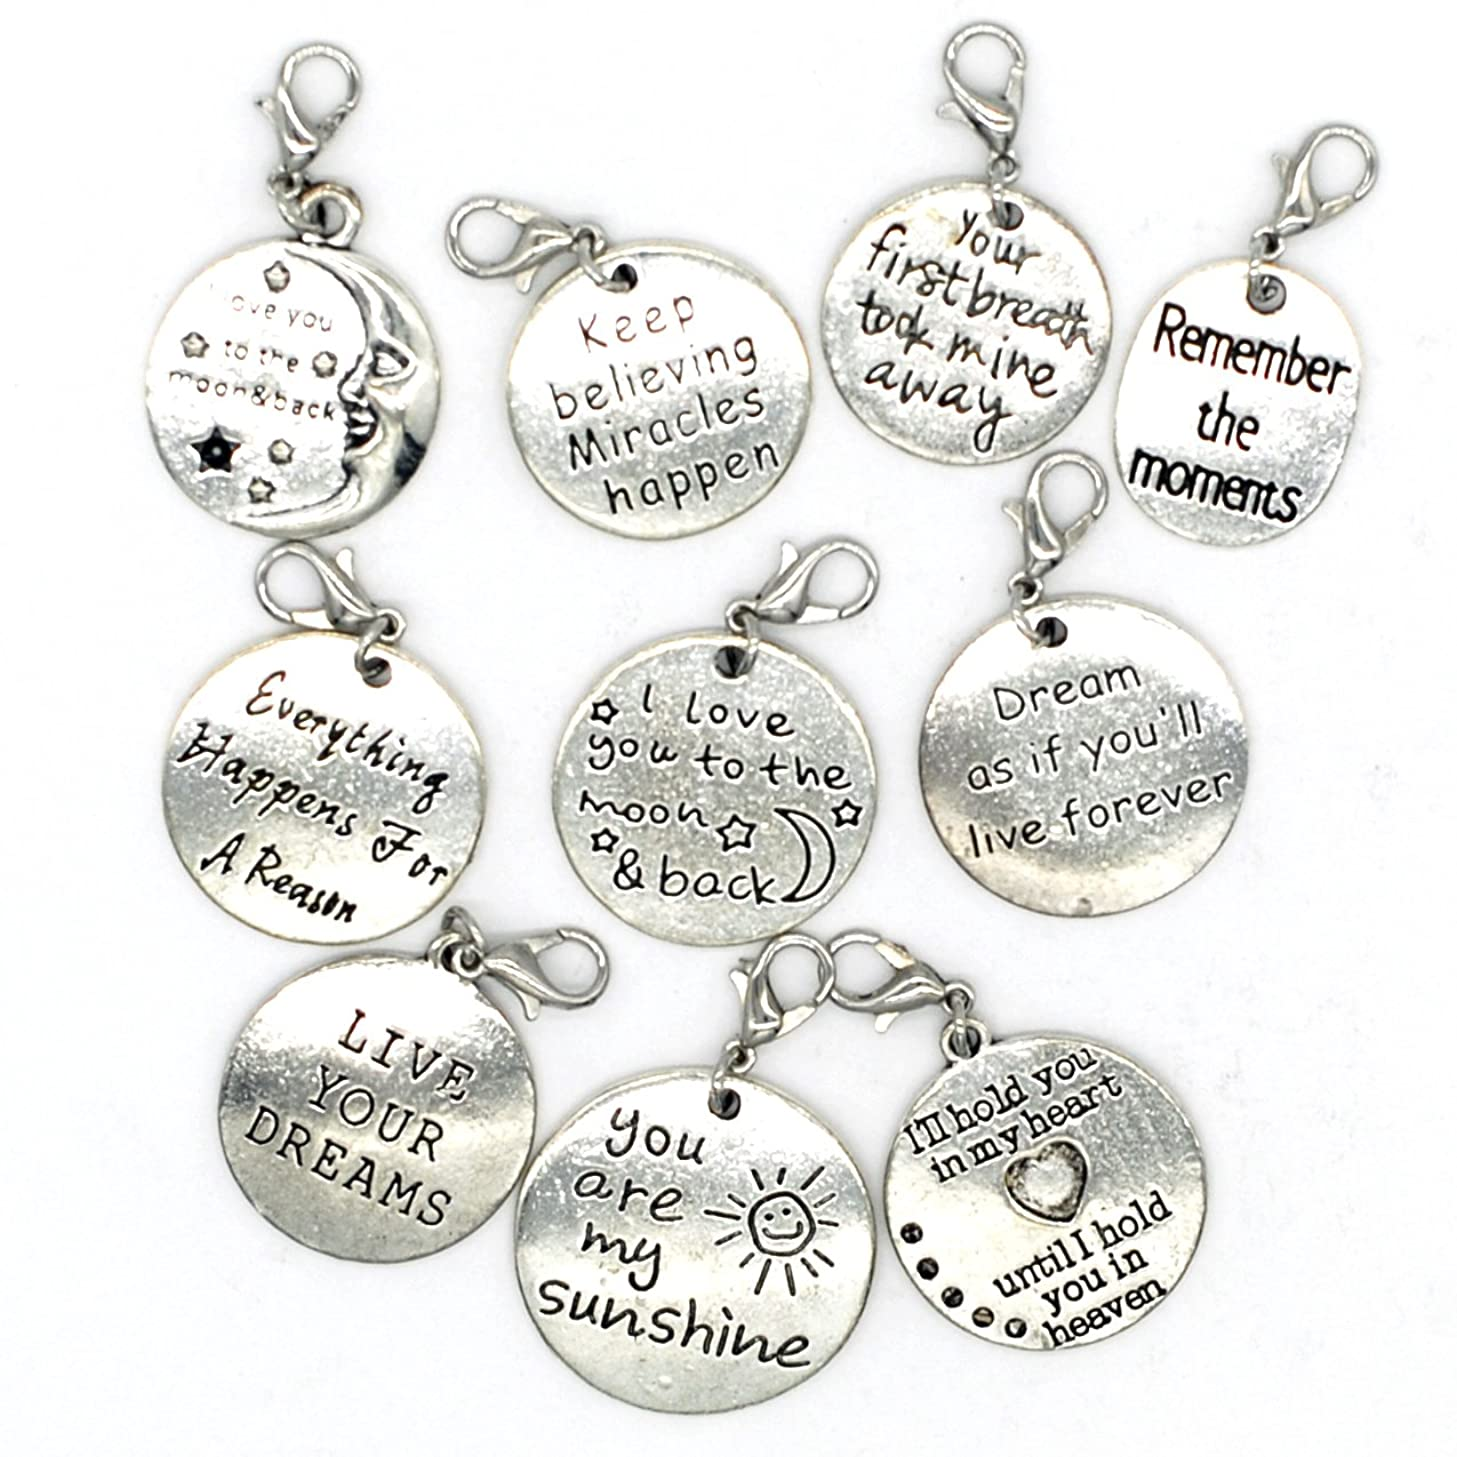 10PCS 10 Words Antique Silver Clip-on Charms Collection, Vintage Jewelry Supply Lot, Wholesale C36